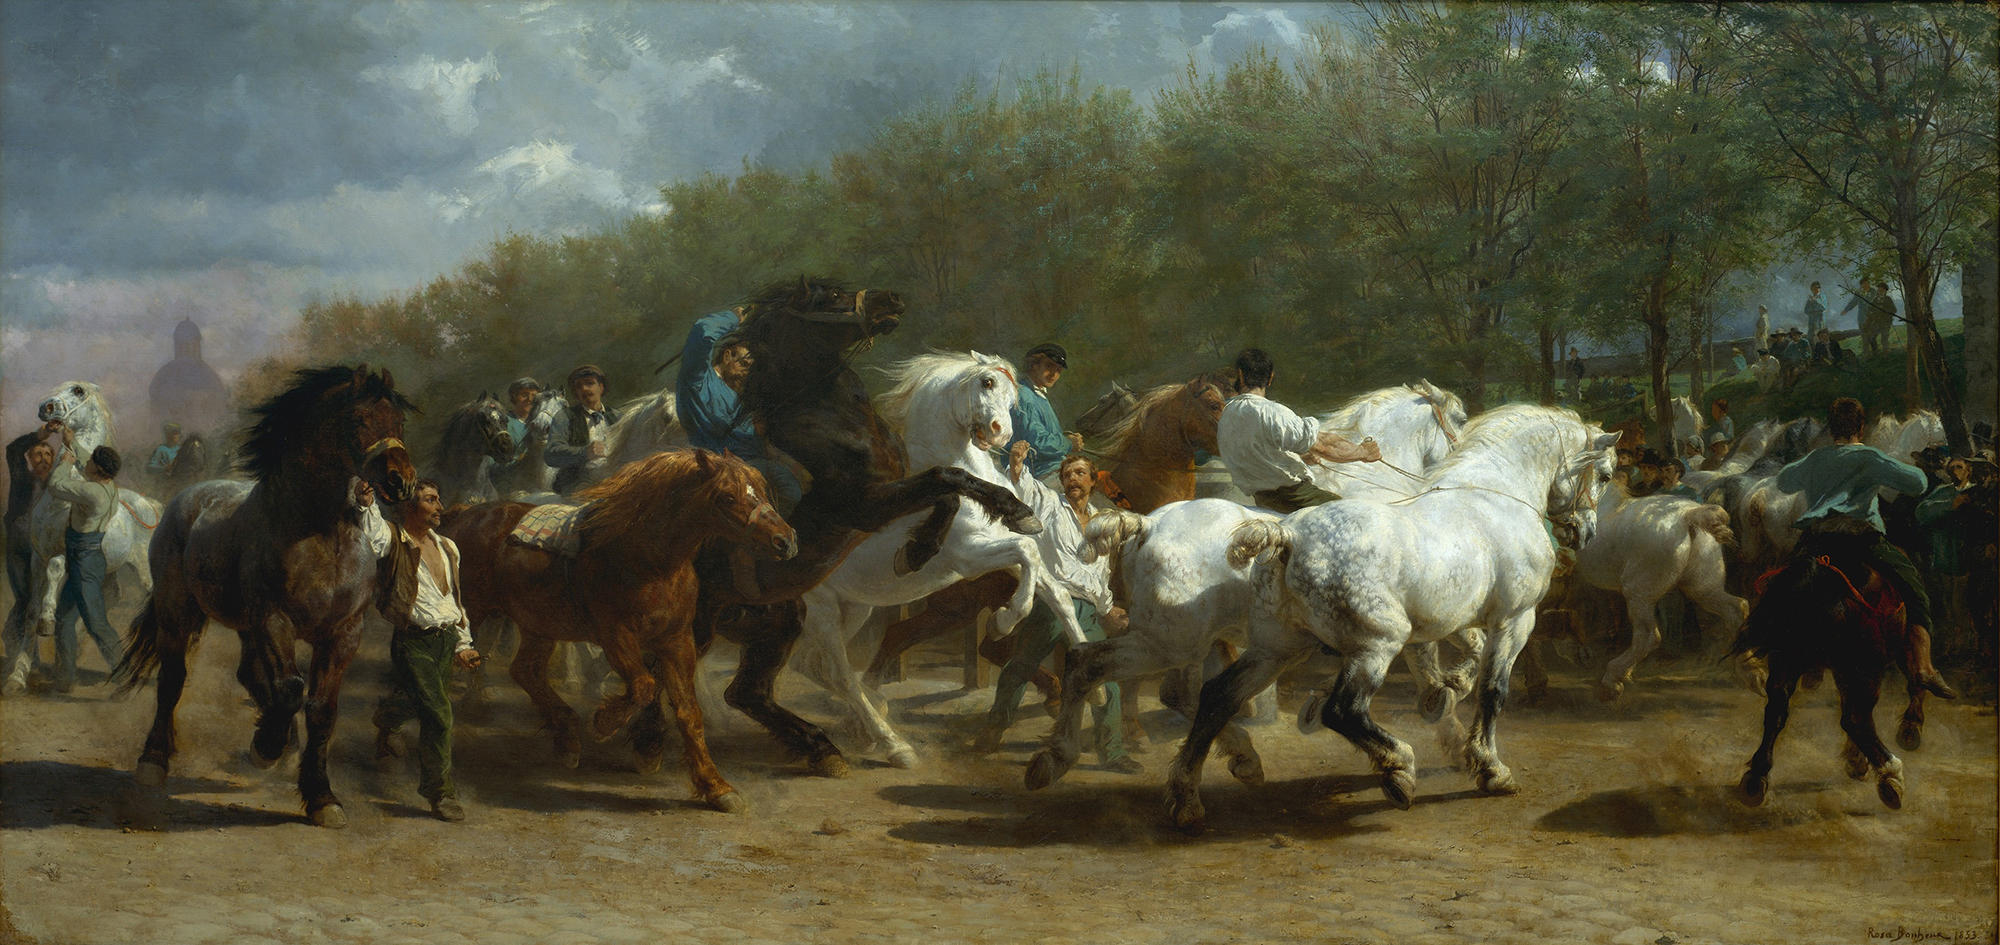 A painting of wild horses running